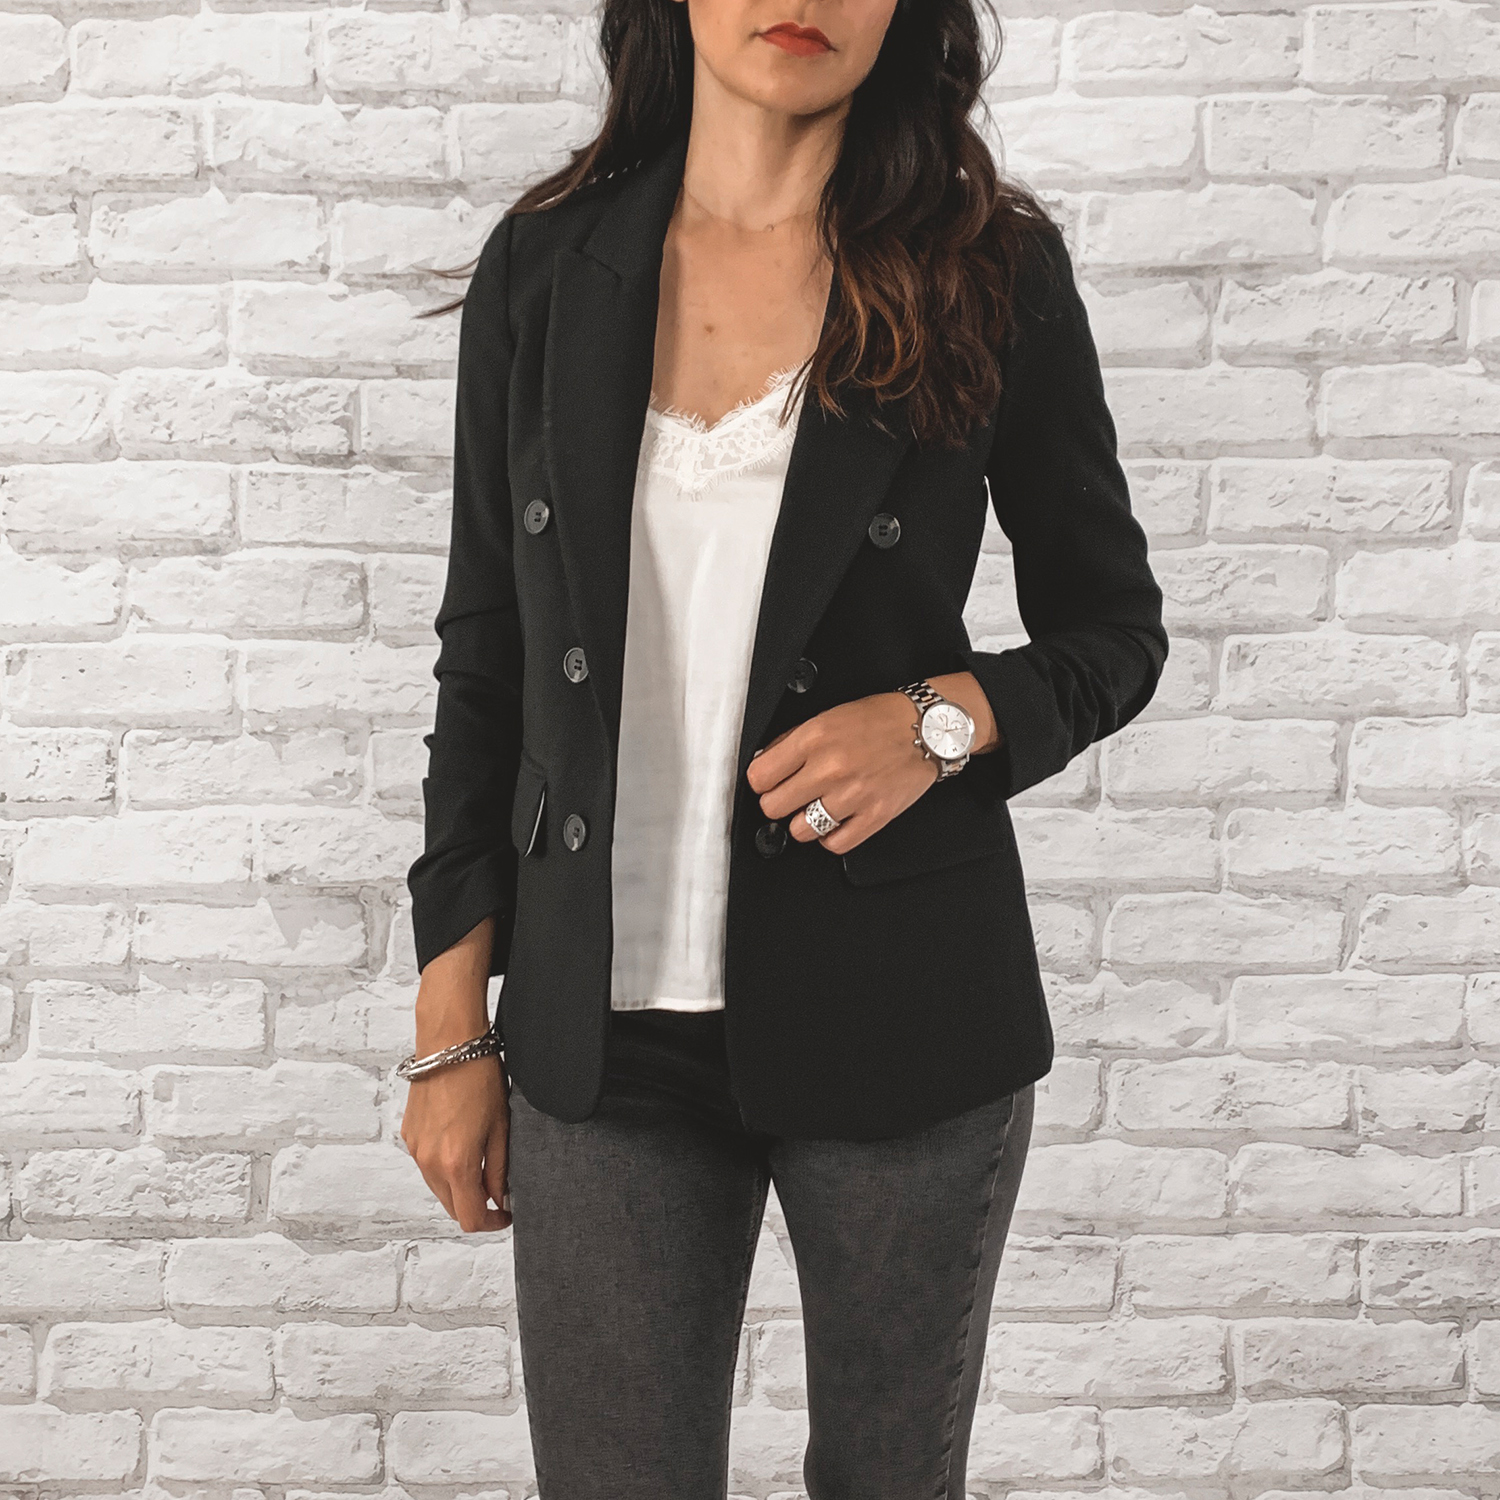 — OUTFIT DETAILS —    1. State Blazer      {Anniversary Price: $85.90 | After Sale: $129.00 | Wearing: Extra Small}  |   BP. Lace Trim Camisole Top      {Anniversary Price: $25.90 | After Sale: $39.00 | Wearing: Small}  |   Topshop Jaime High Waisted Jeans      {Anniversary Price: $49.90 | After Sale: $75.00 | Wearing: 28}    — CCW DETAILS —    StealthGearUSA Holster     |   Belt   | Glock 43